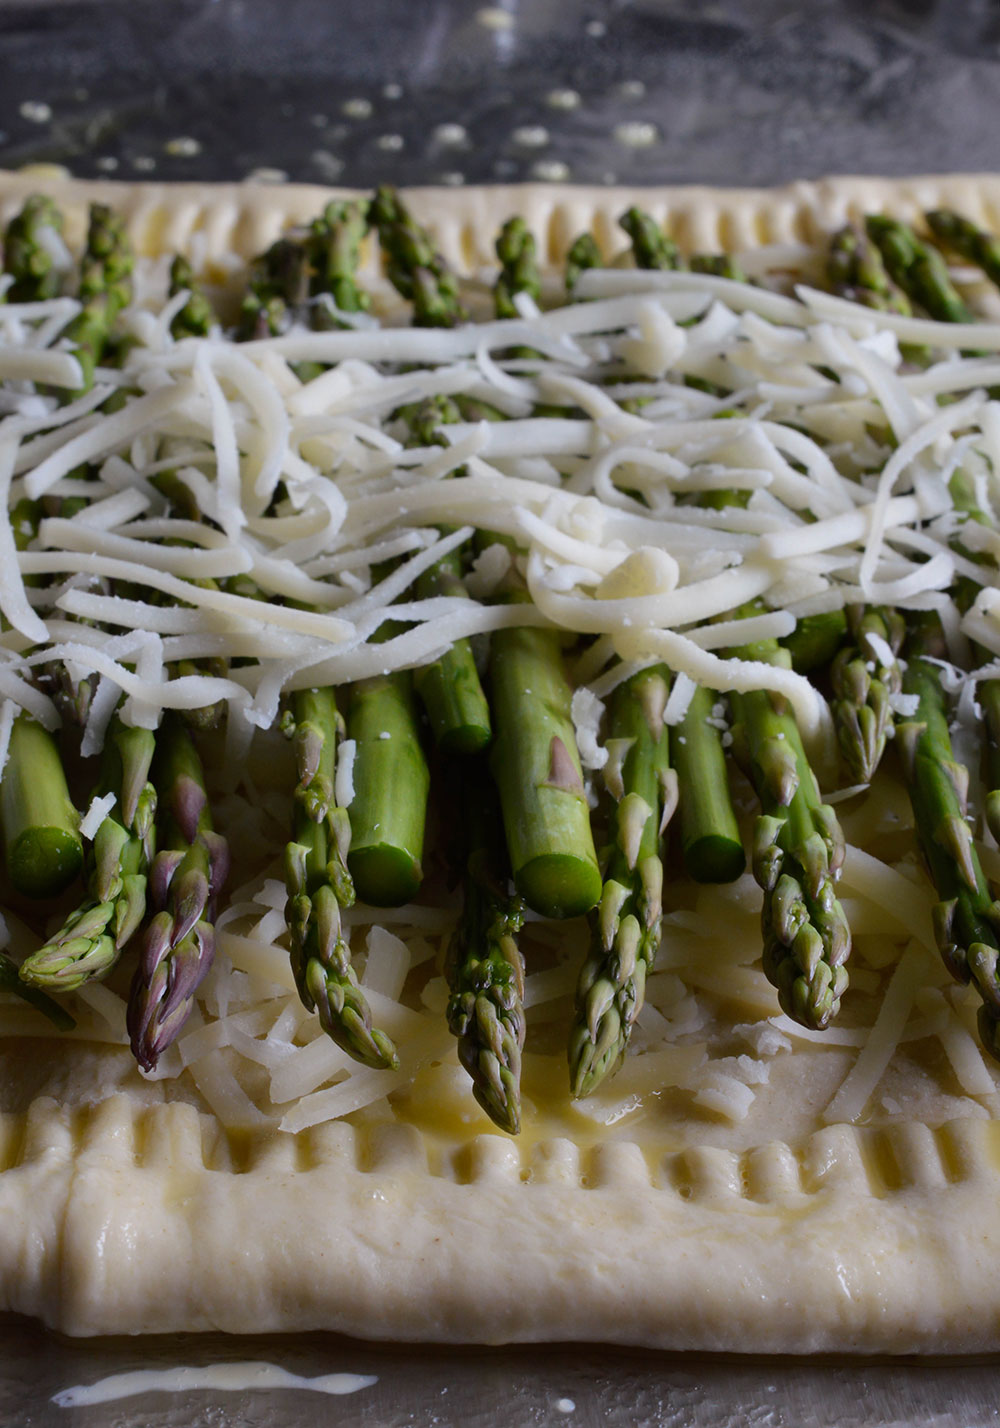 This Asparagus and Prosciutto Puff Pastry is perfect as an appetizer or meal! A simple recipe with flavorful ingredients. Golden puff pastry topped with fresh asparagus, cheese, prosciutto and drizzled with a honey mustard sauce!